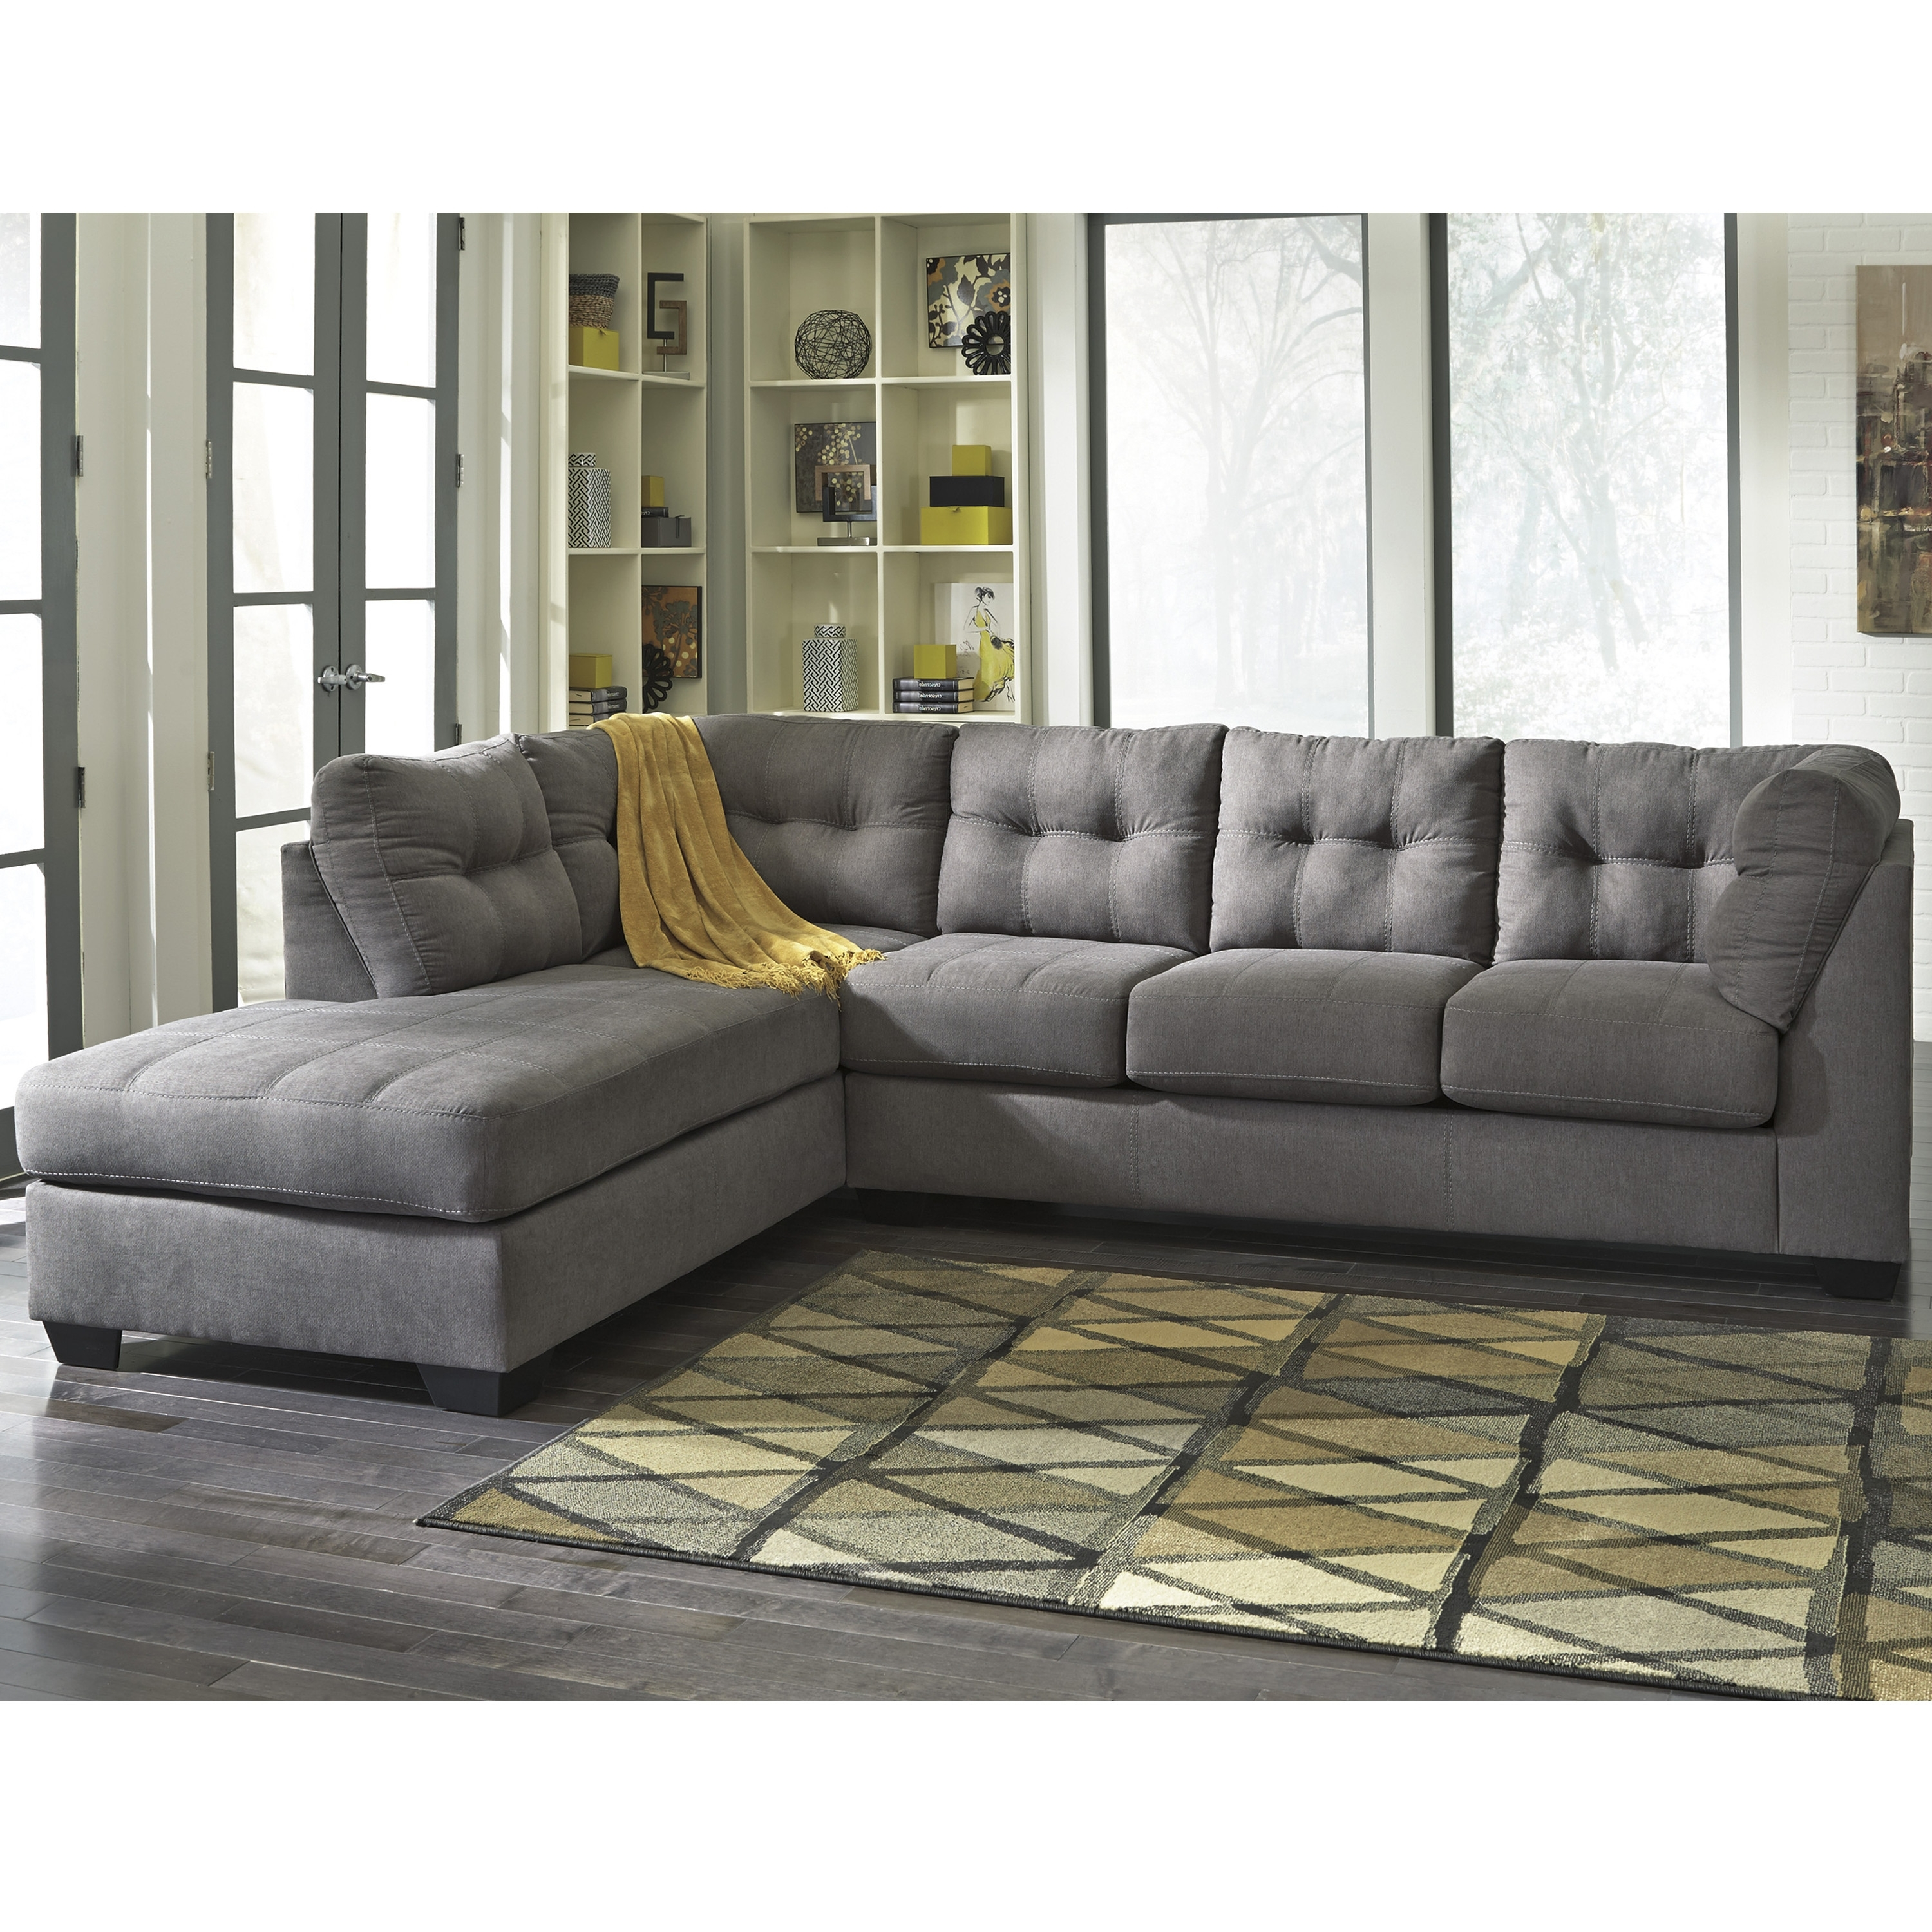 Luxury Sectional Sofas Portland 51 For Your Leather And Cloth For Portland Sectional Sofas (Image 3 of 10)